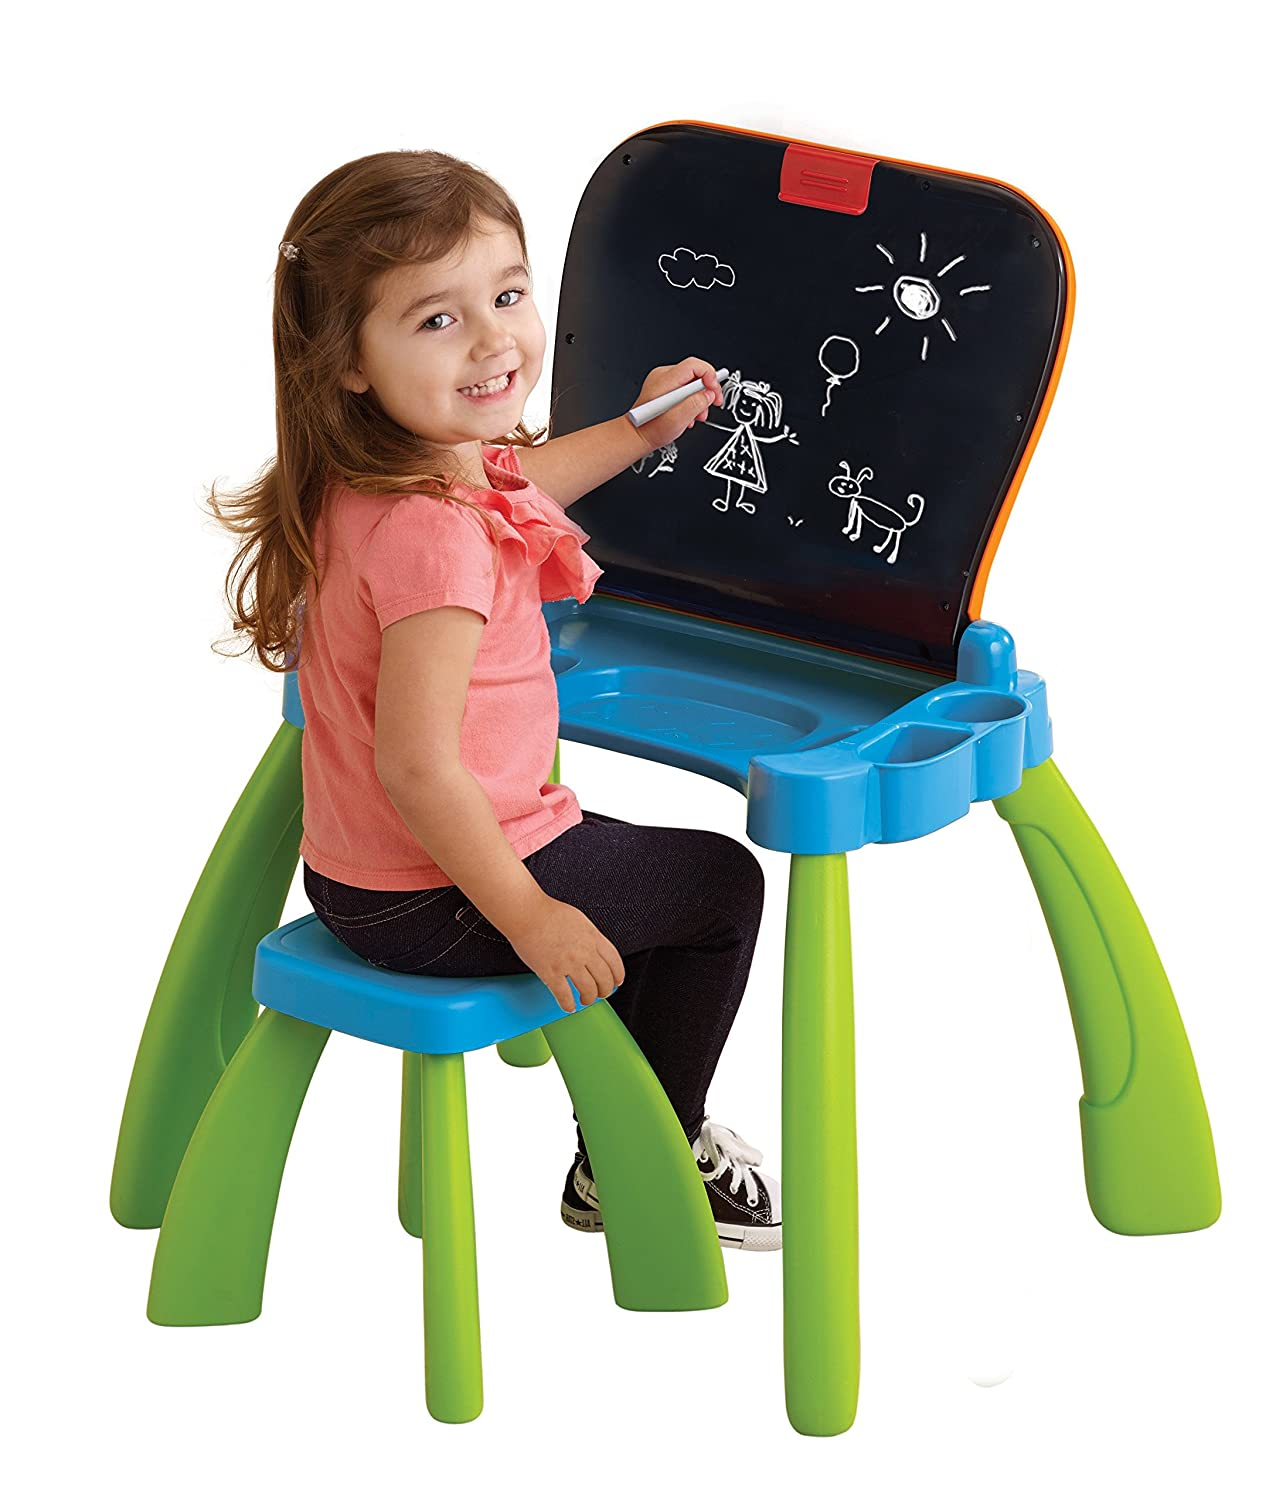 Amazon.com VTech Touch and Learn Activity Desk (Frustration Free Packaging) Toys u0026 Games  sc 1 st  Amazon.com & Amazon.com: VTech Touch and Learn Activity Desk (Frustration Free ...